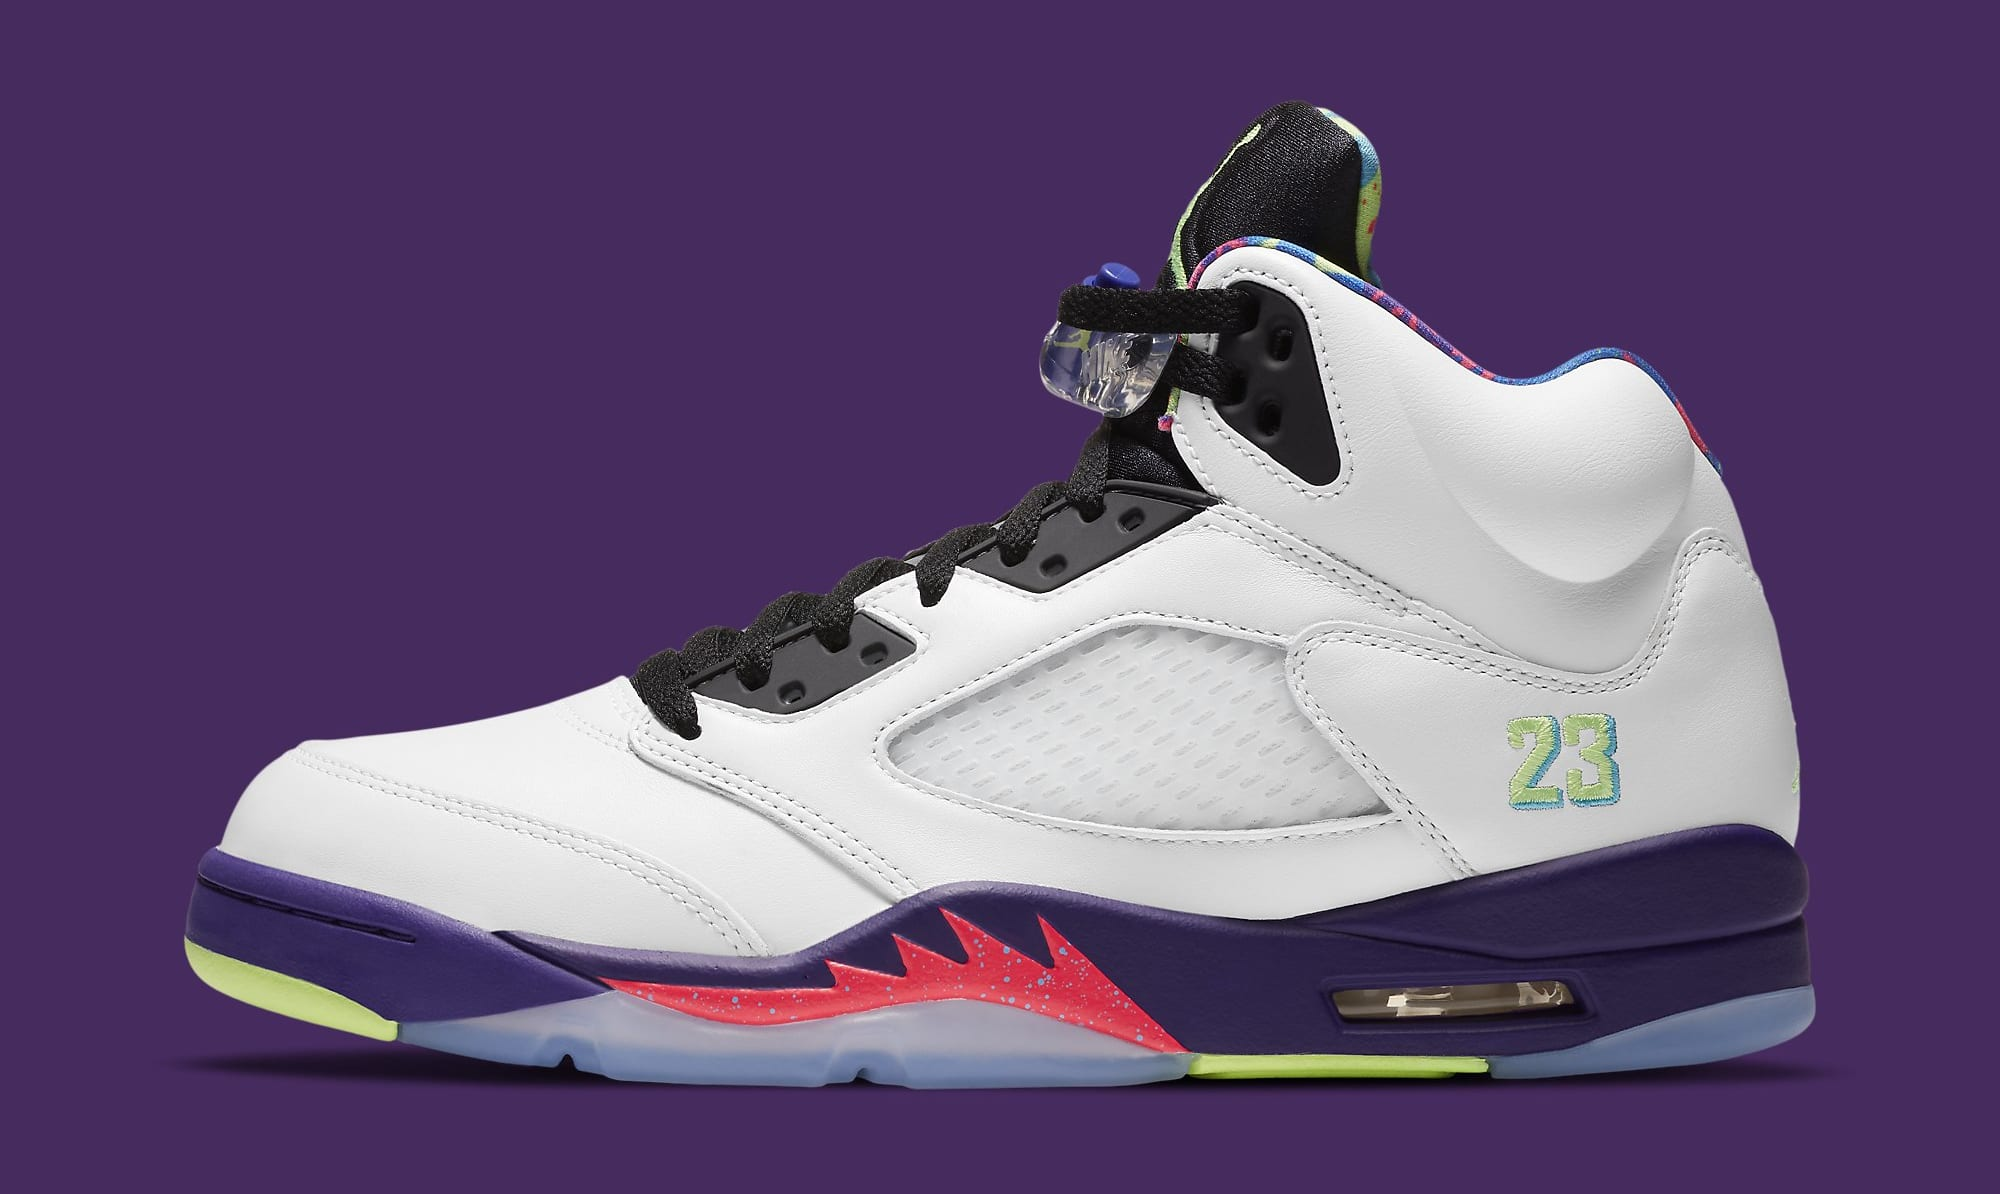 Air Jordan 5 Retro 'Ghost Green' DB3335-100 Lateral